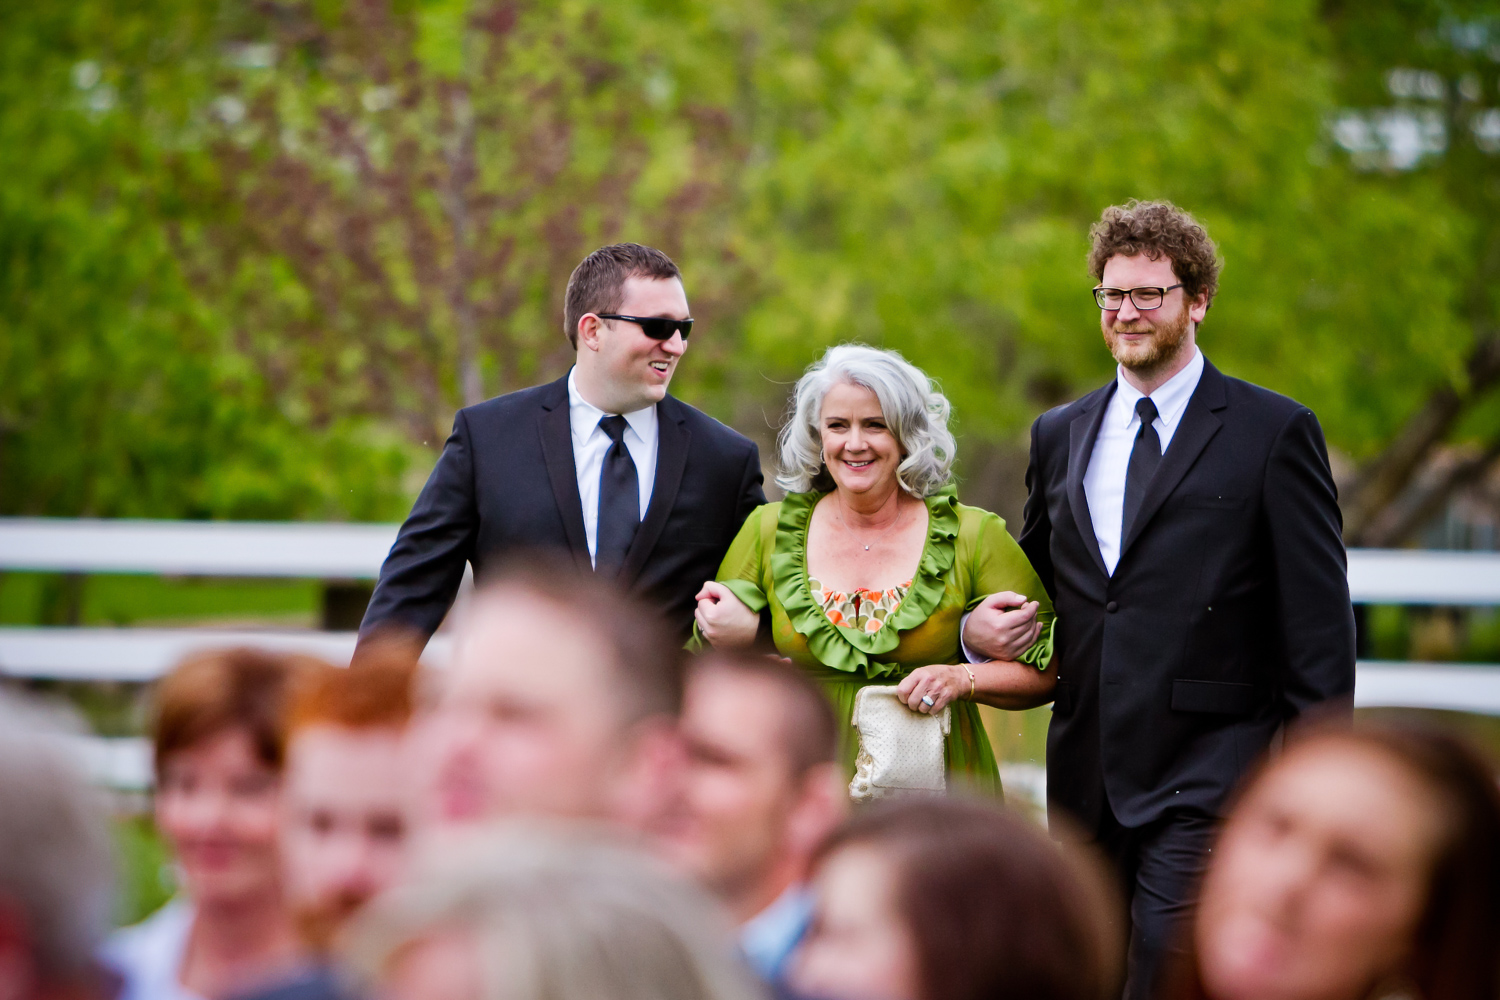 Crooked_Willow_Farms_Wedding_028.JPG